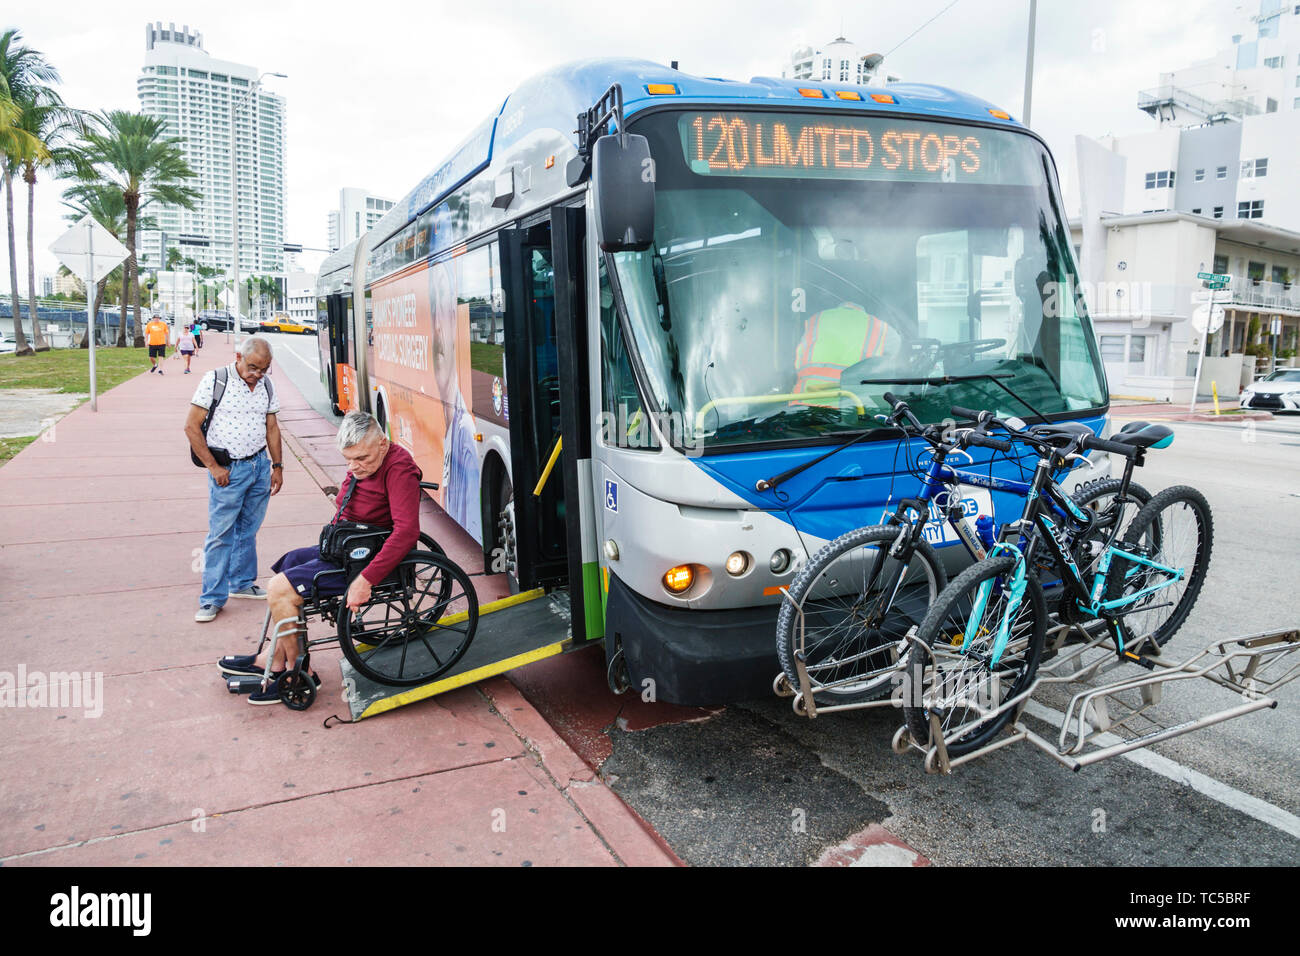 Miami Beach Miami Florida-Dade Metrobus public bus transportation disabled man handicap handicapped ADA access ramp wheelchair bicycle rack - Stock Image